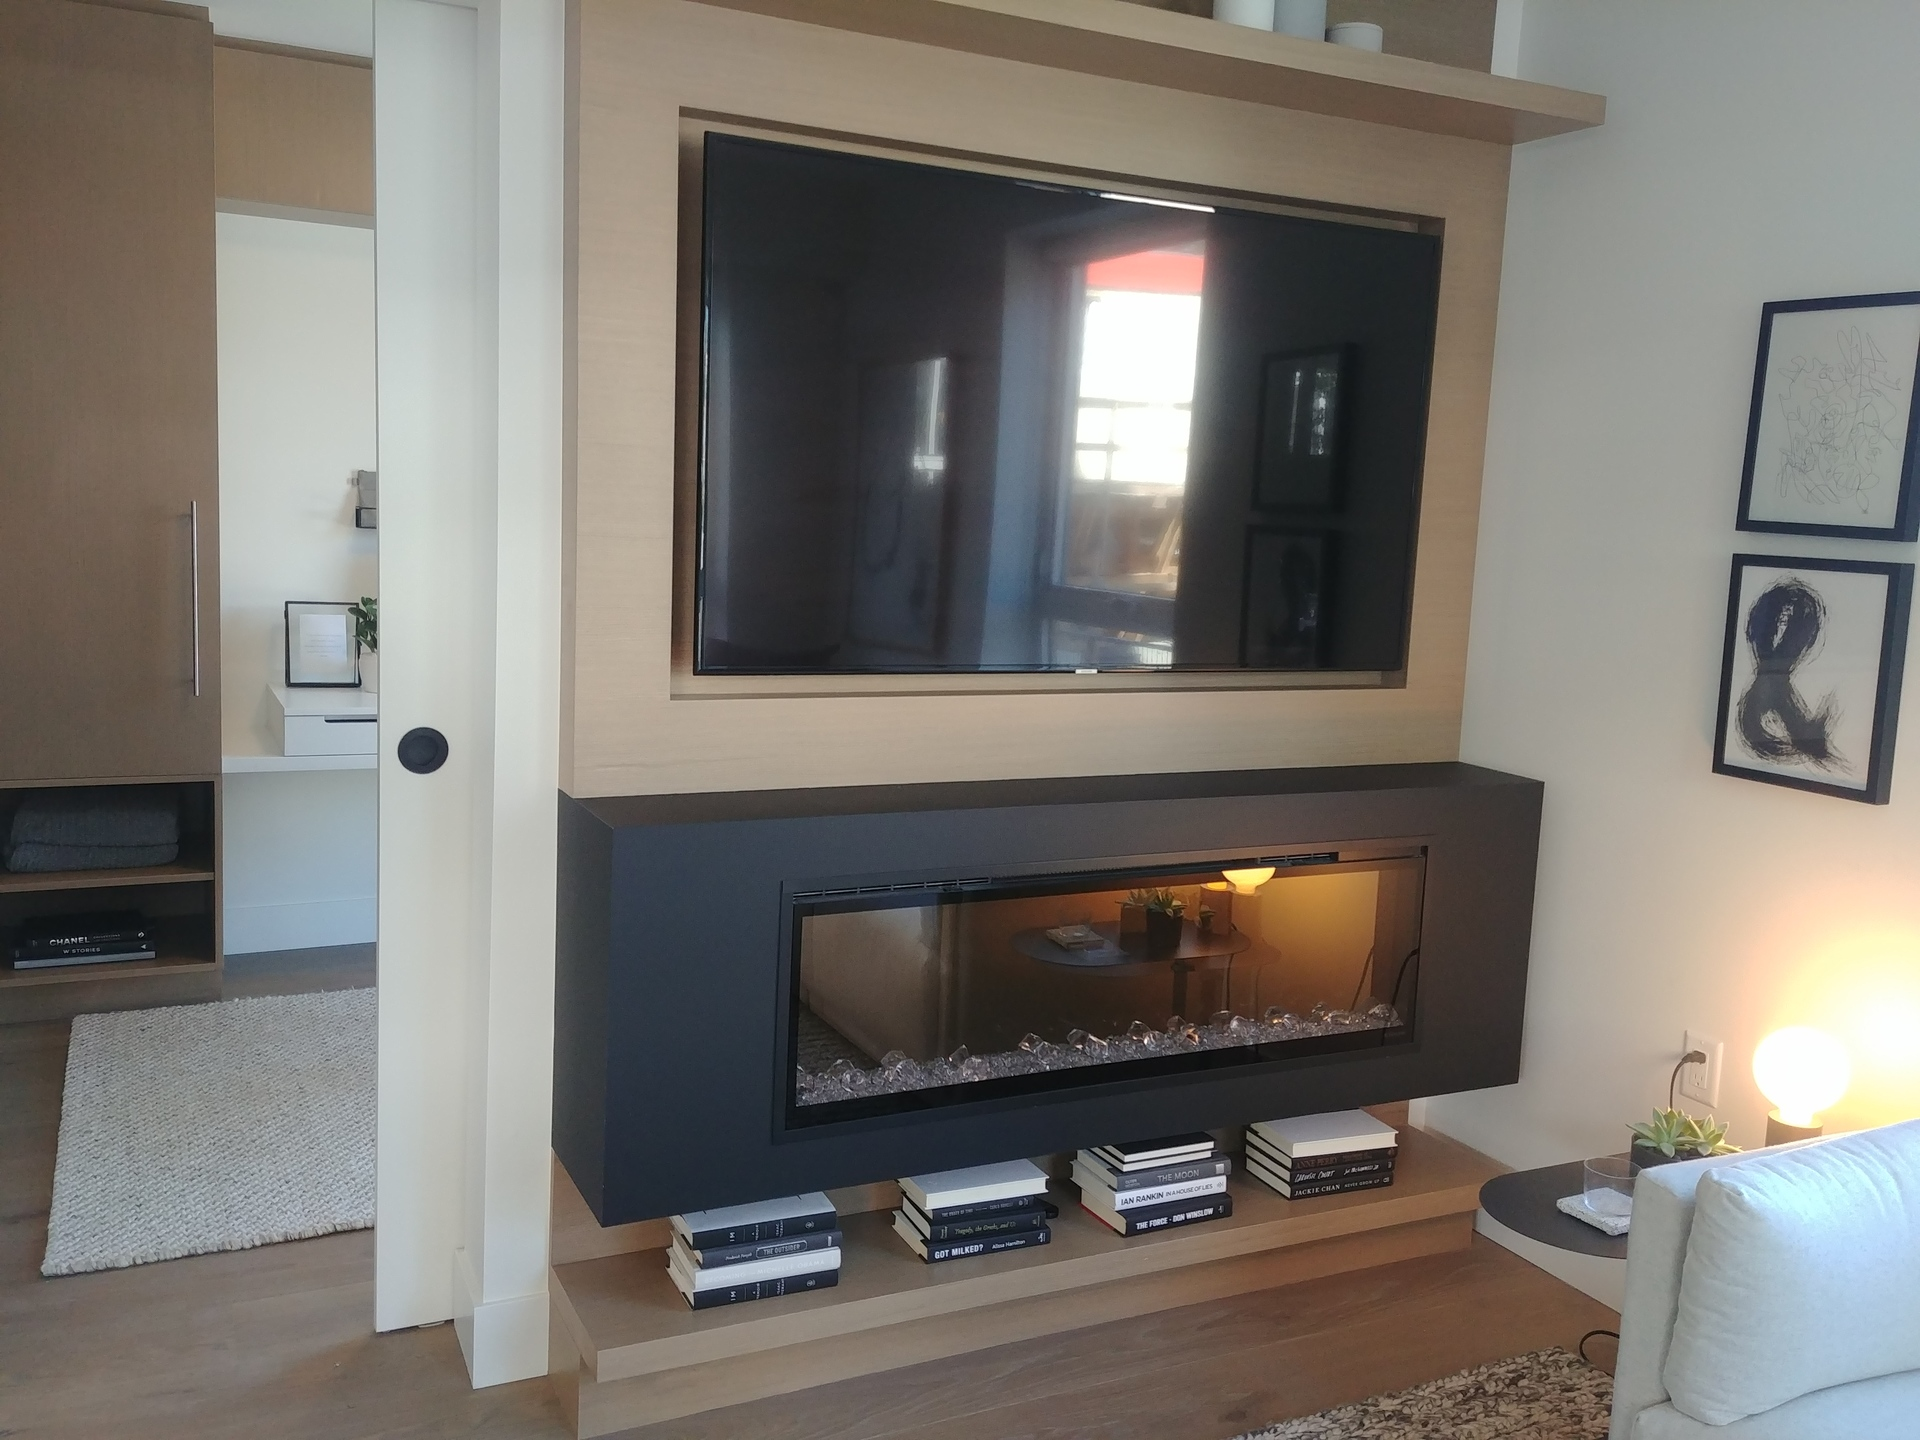 shift-electric-fireplace-and-millwork-included at Shift (5089 Quebec Street, Main, Vancouver East)